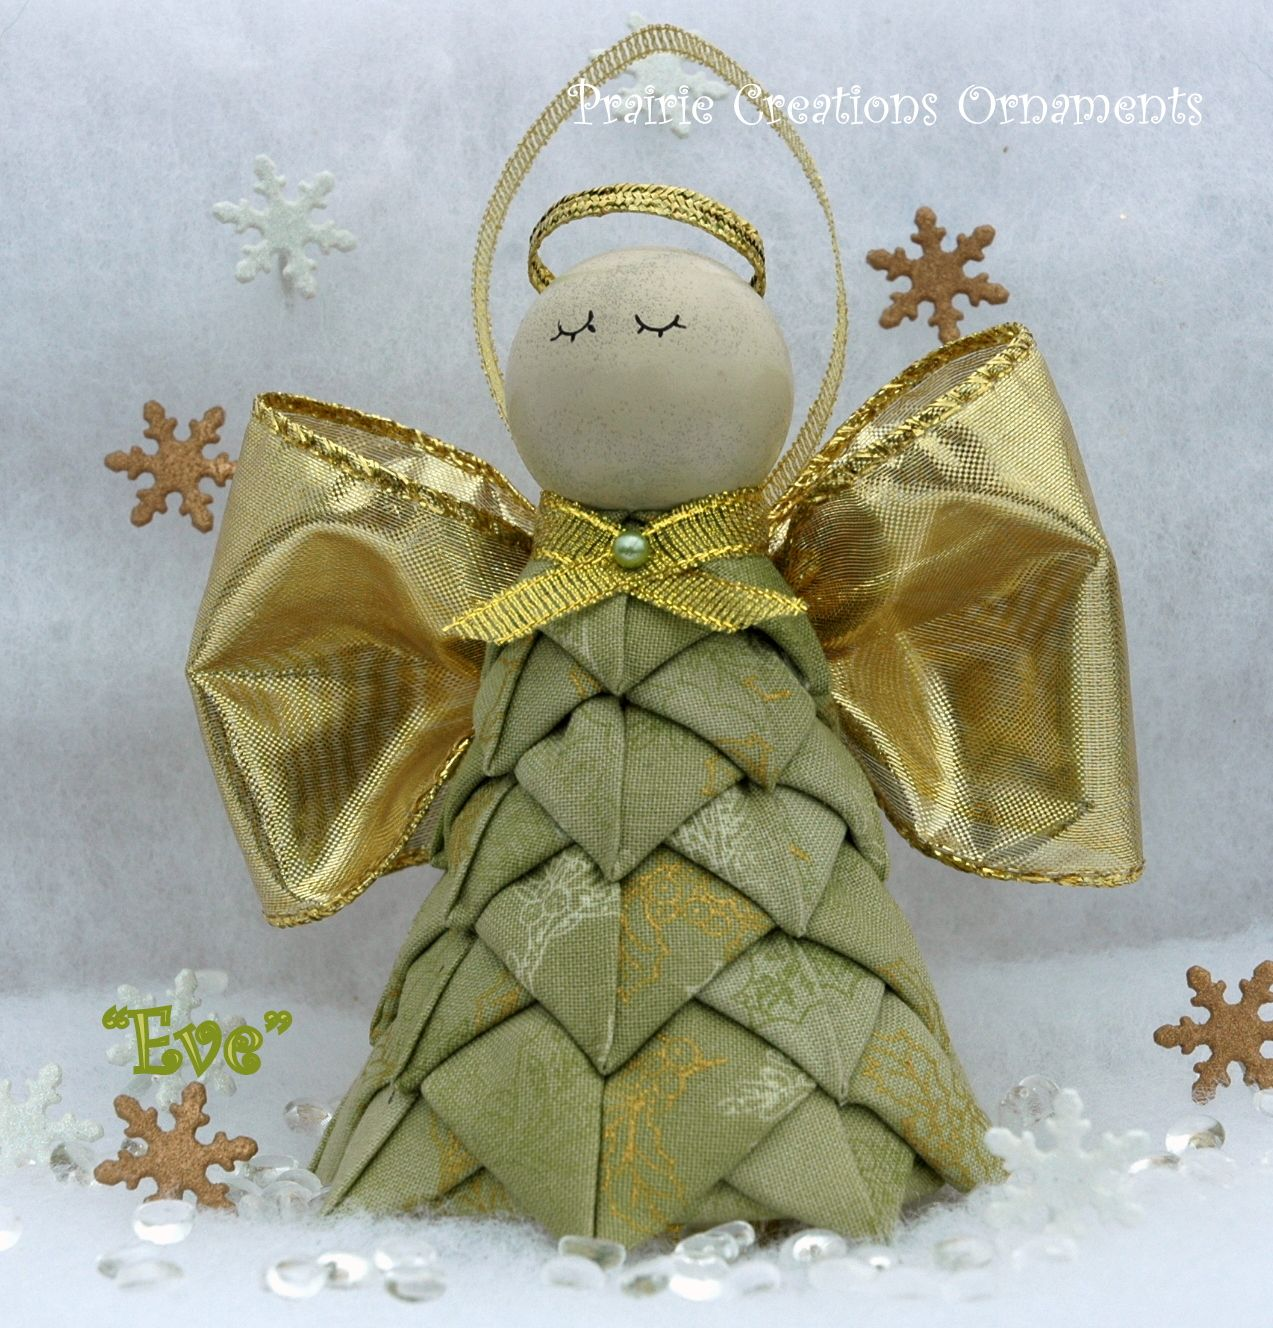 Folded fabric christmas ornaments patterns - Christmas Angel Folded Fabric Ornament Kit By Myprairiecreations Craft Supplies Tools Patterns Tutorials Sewing Needlecraft Quilting